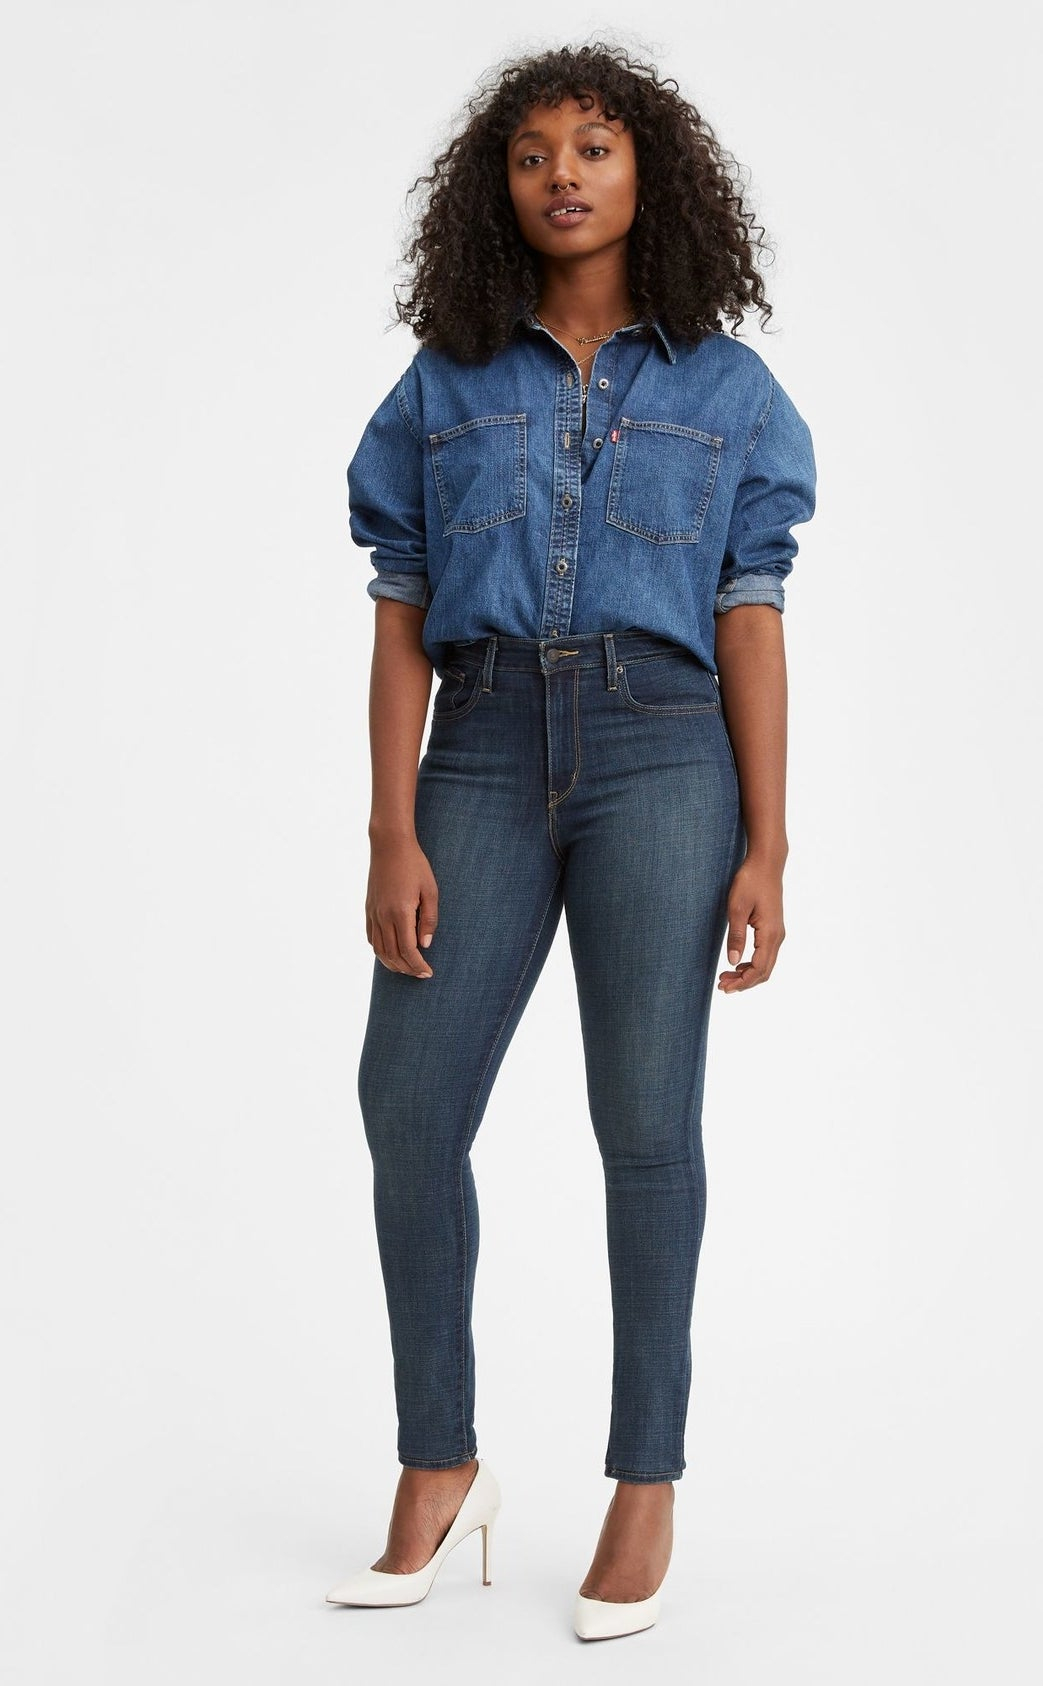 model wearing skinny high rise jeans with a denim shirt and white pumps